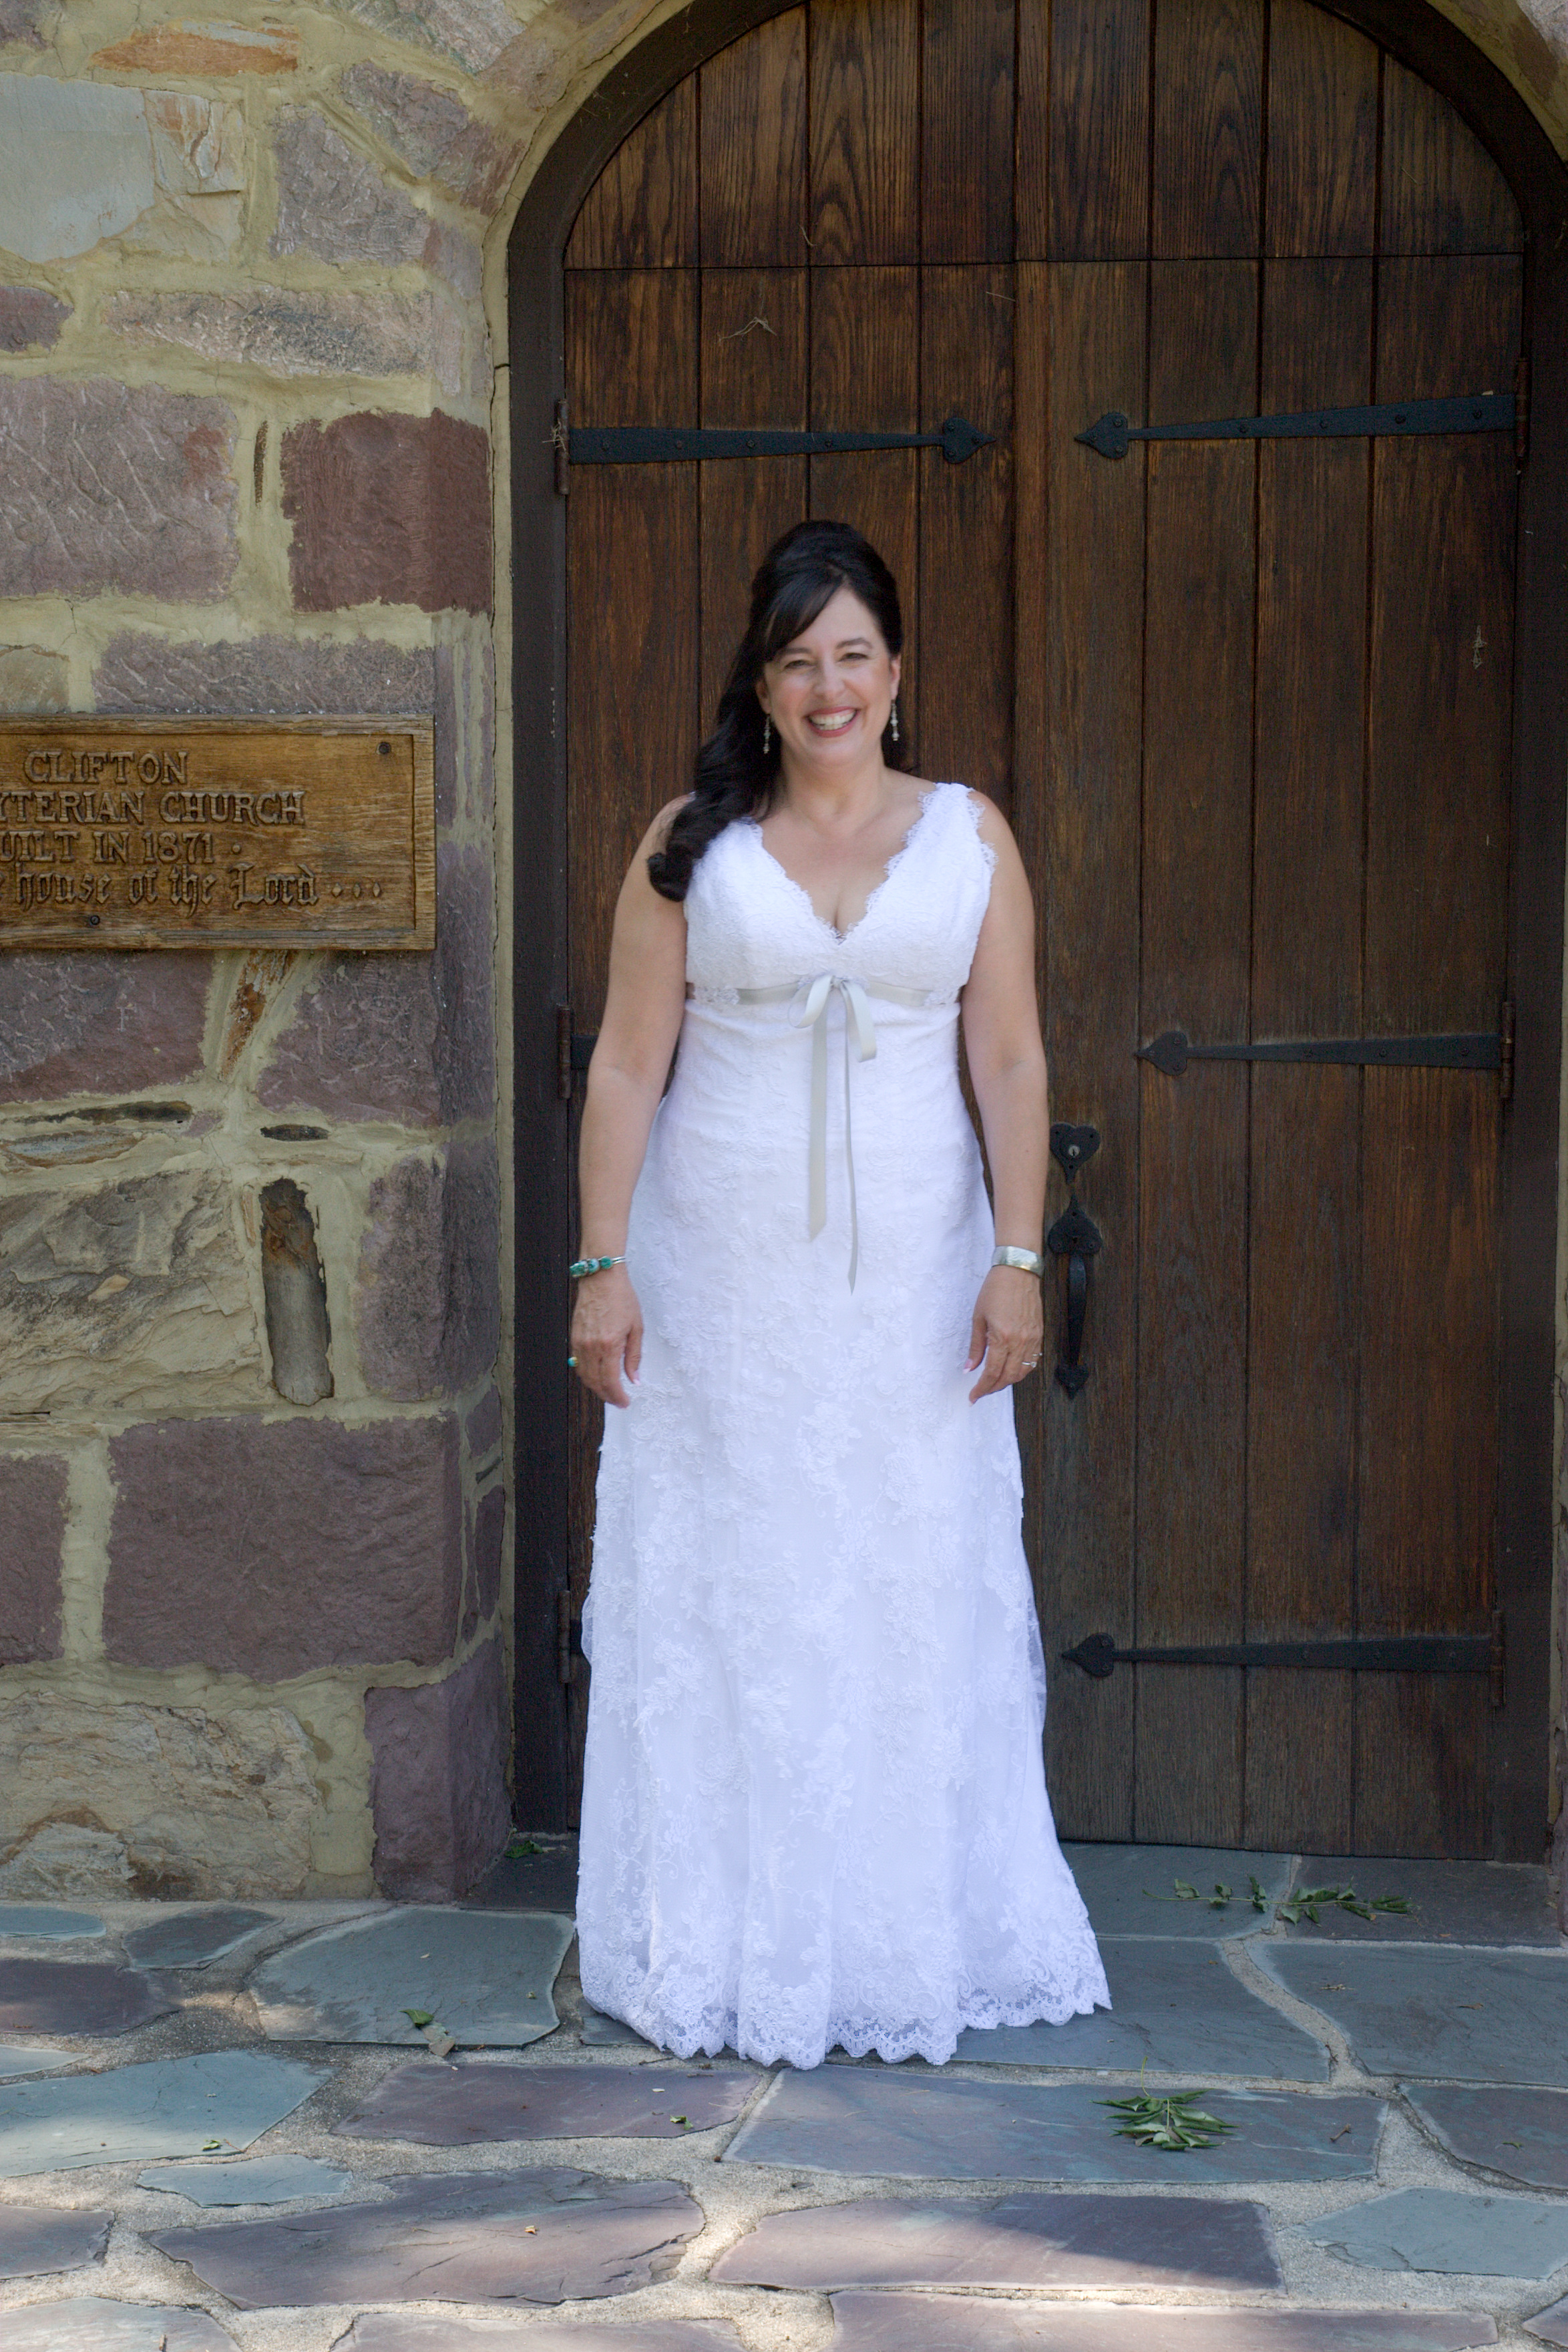 Bride at church door